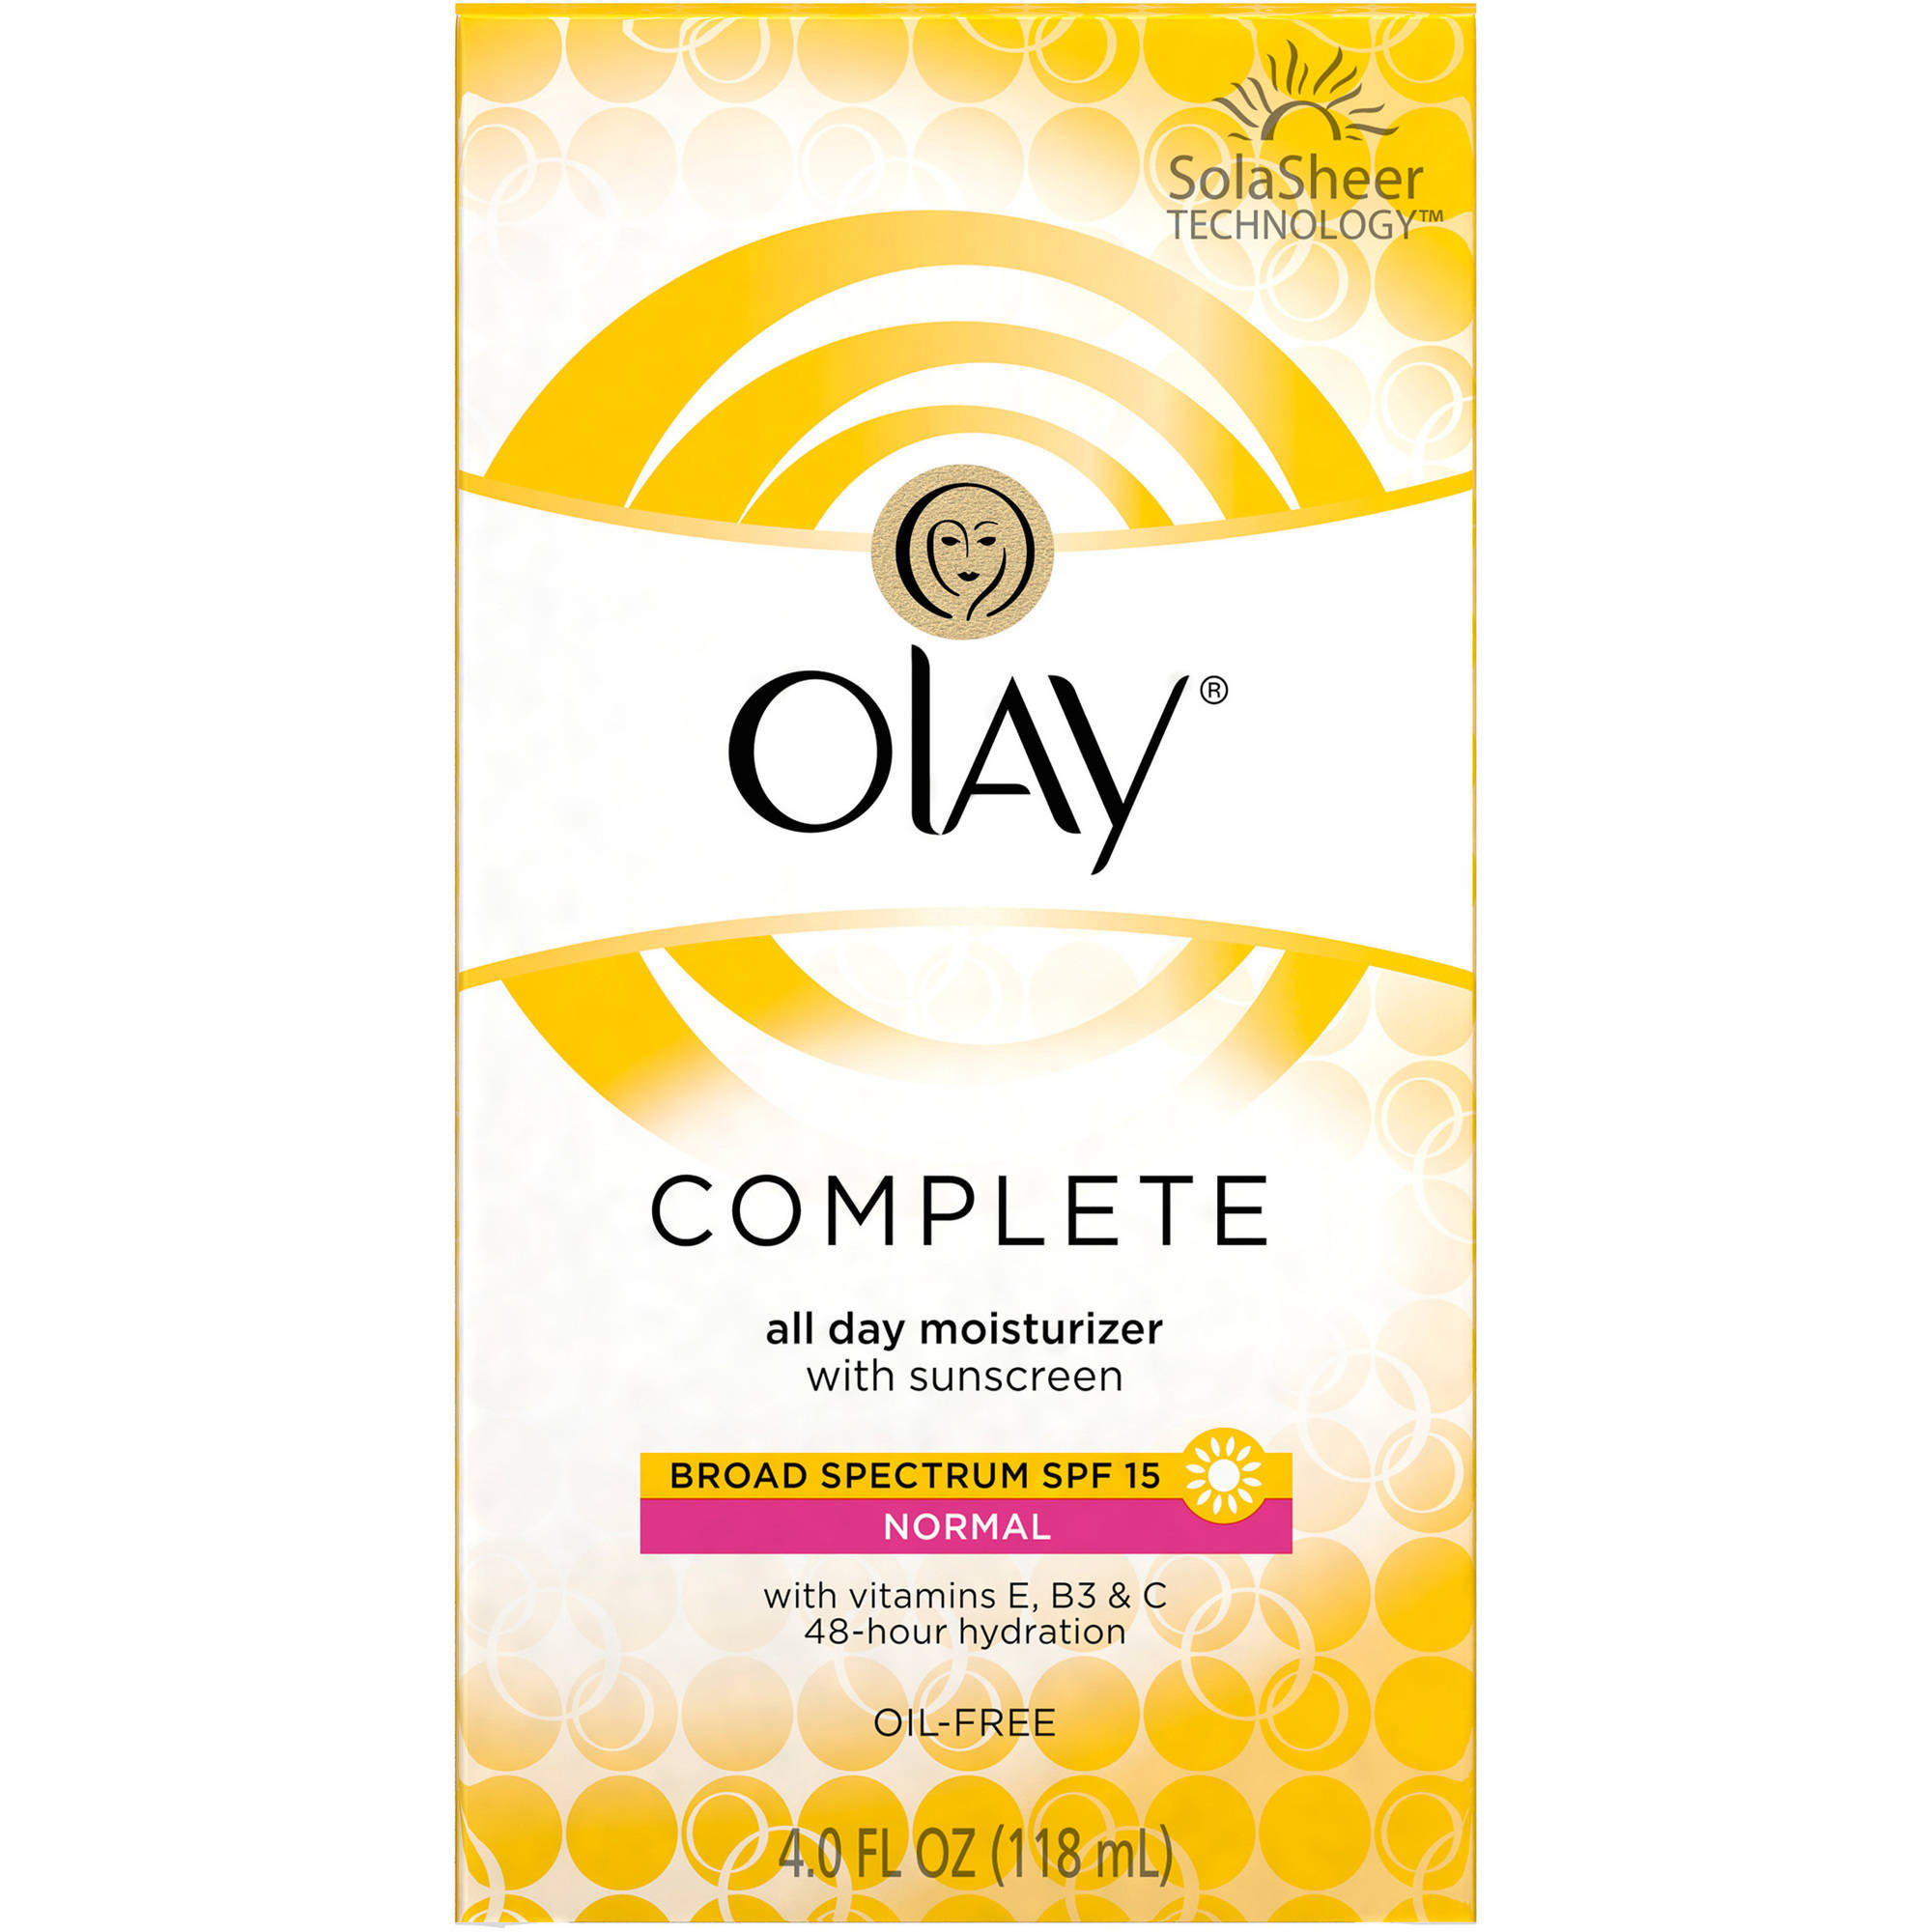 Olay Complete All Day Facial Moisturizer with Sunscreen, SPF 15, 4 fl oz